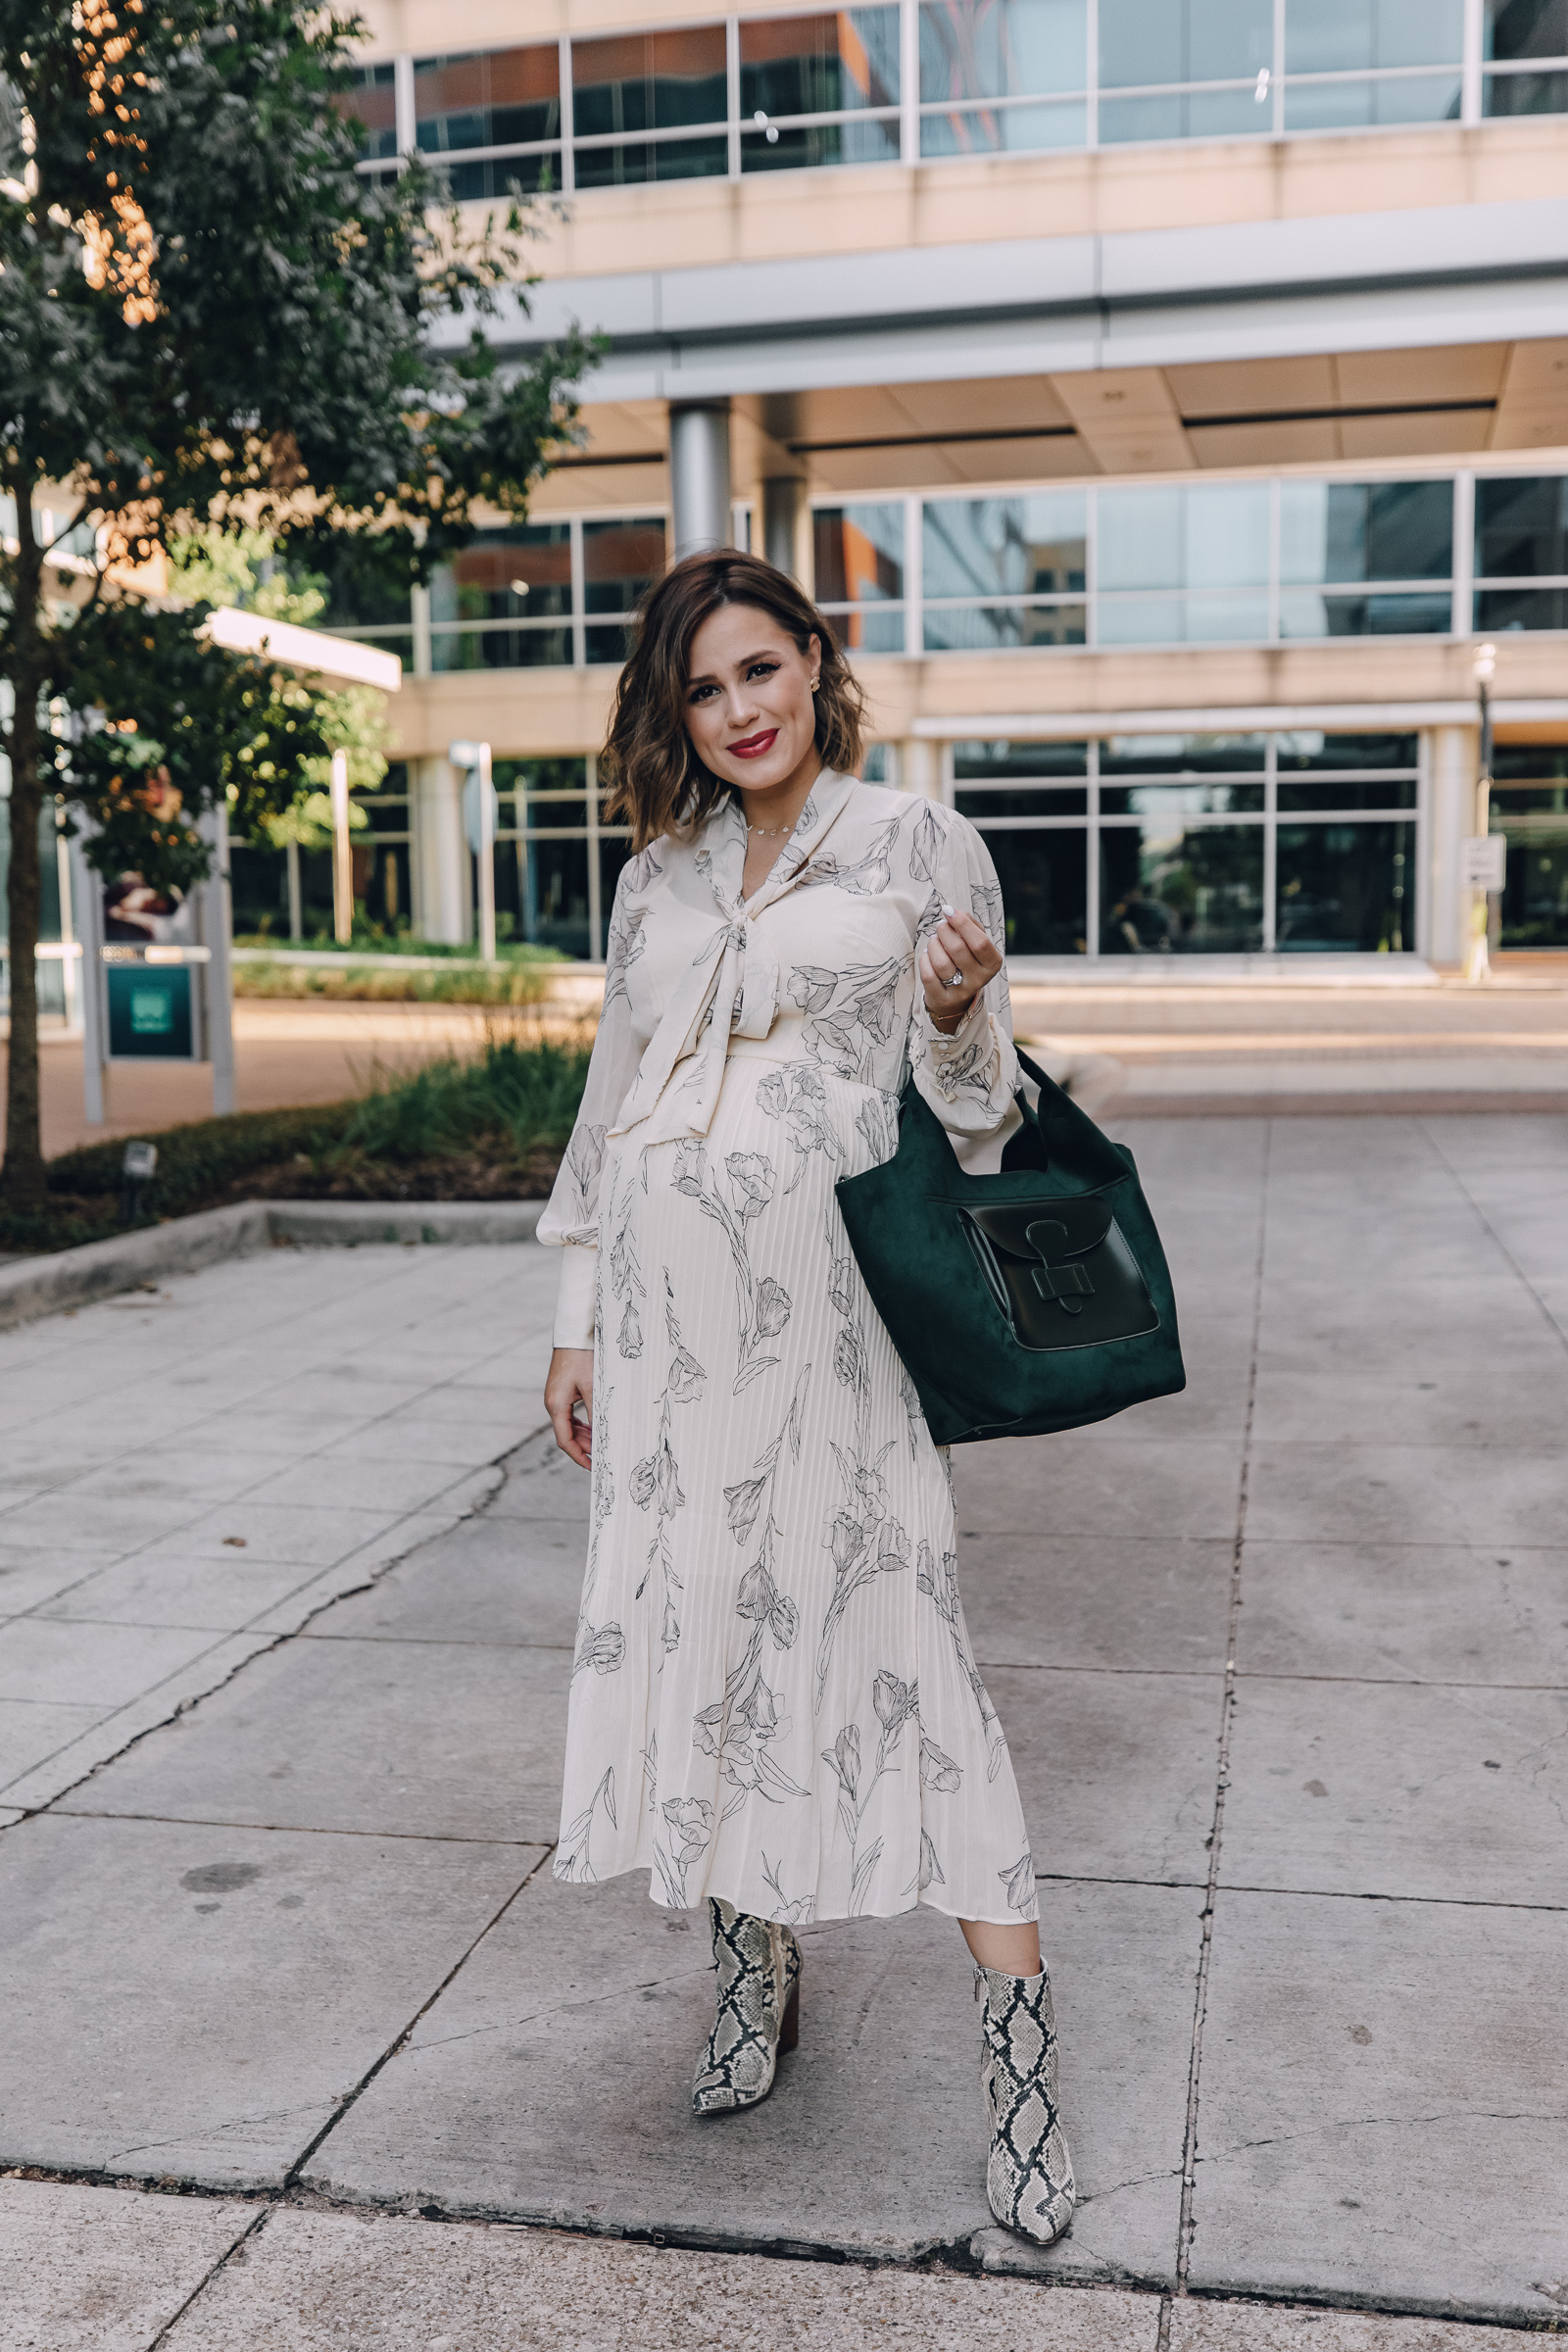 Elly Brown wears a Target pleated fall dress that's under $35 with snake print booties for a fall outfit